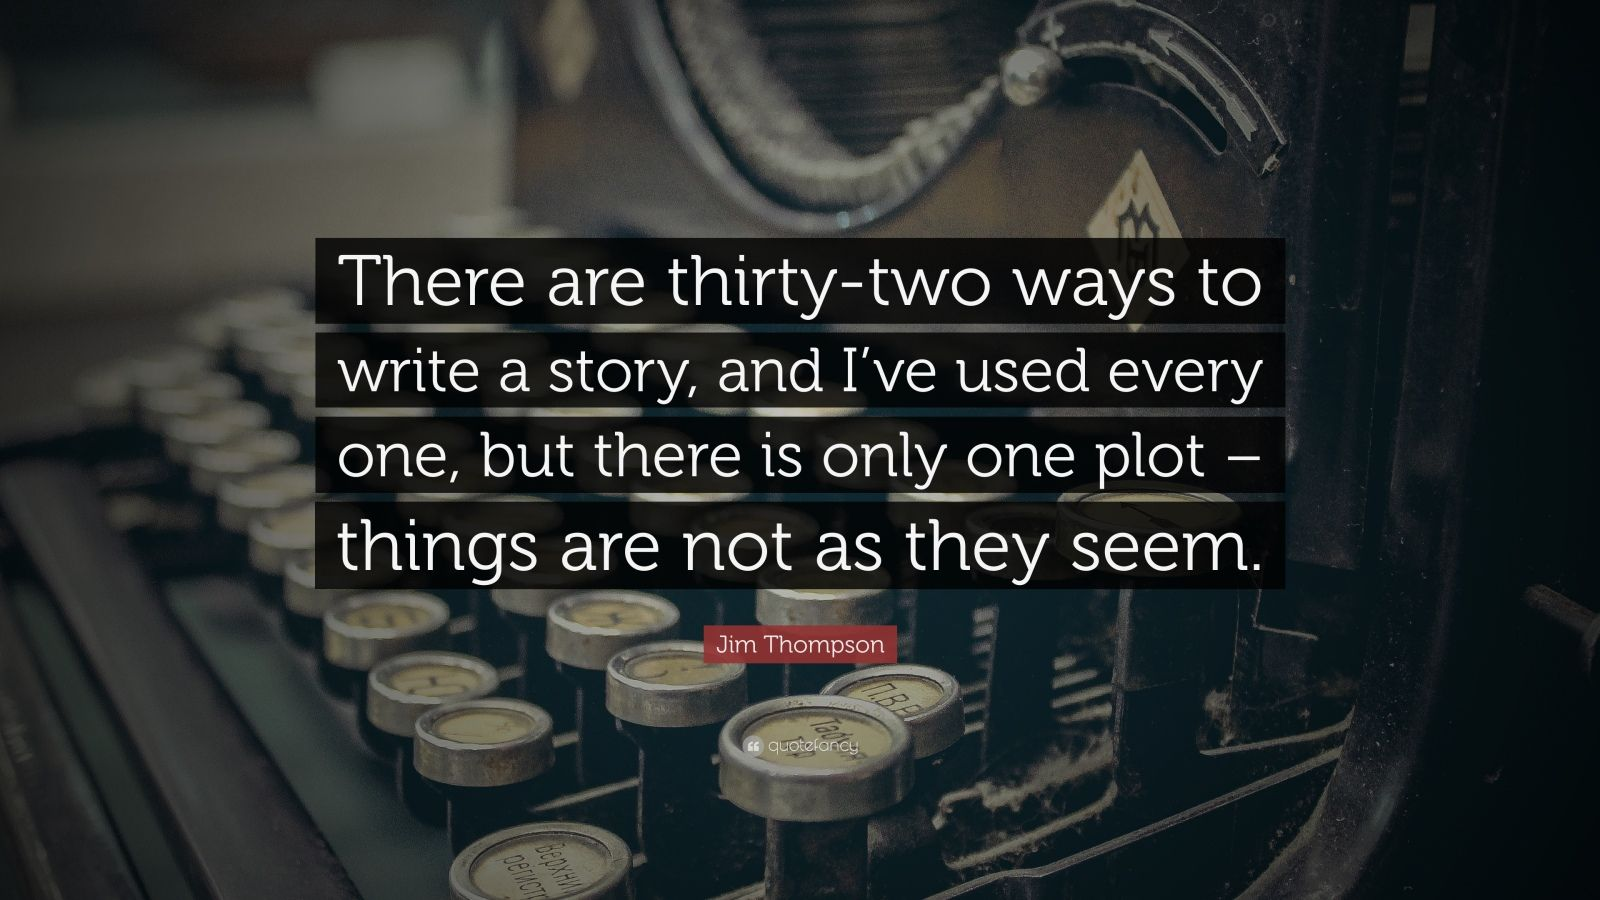 """Jim Thompson Quote: """"There are thirty-two ways to write a story, and I've used every one, but there is only one plot – things are not as they seem."""""""